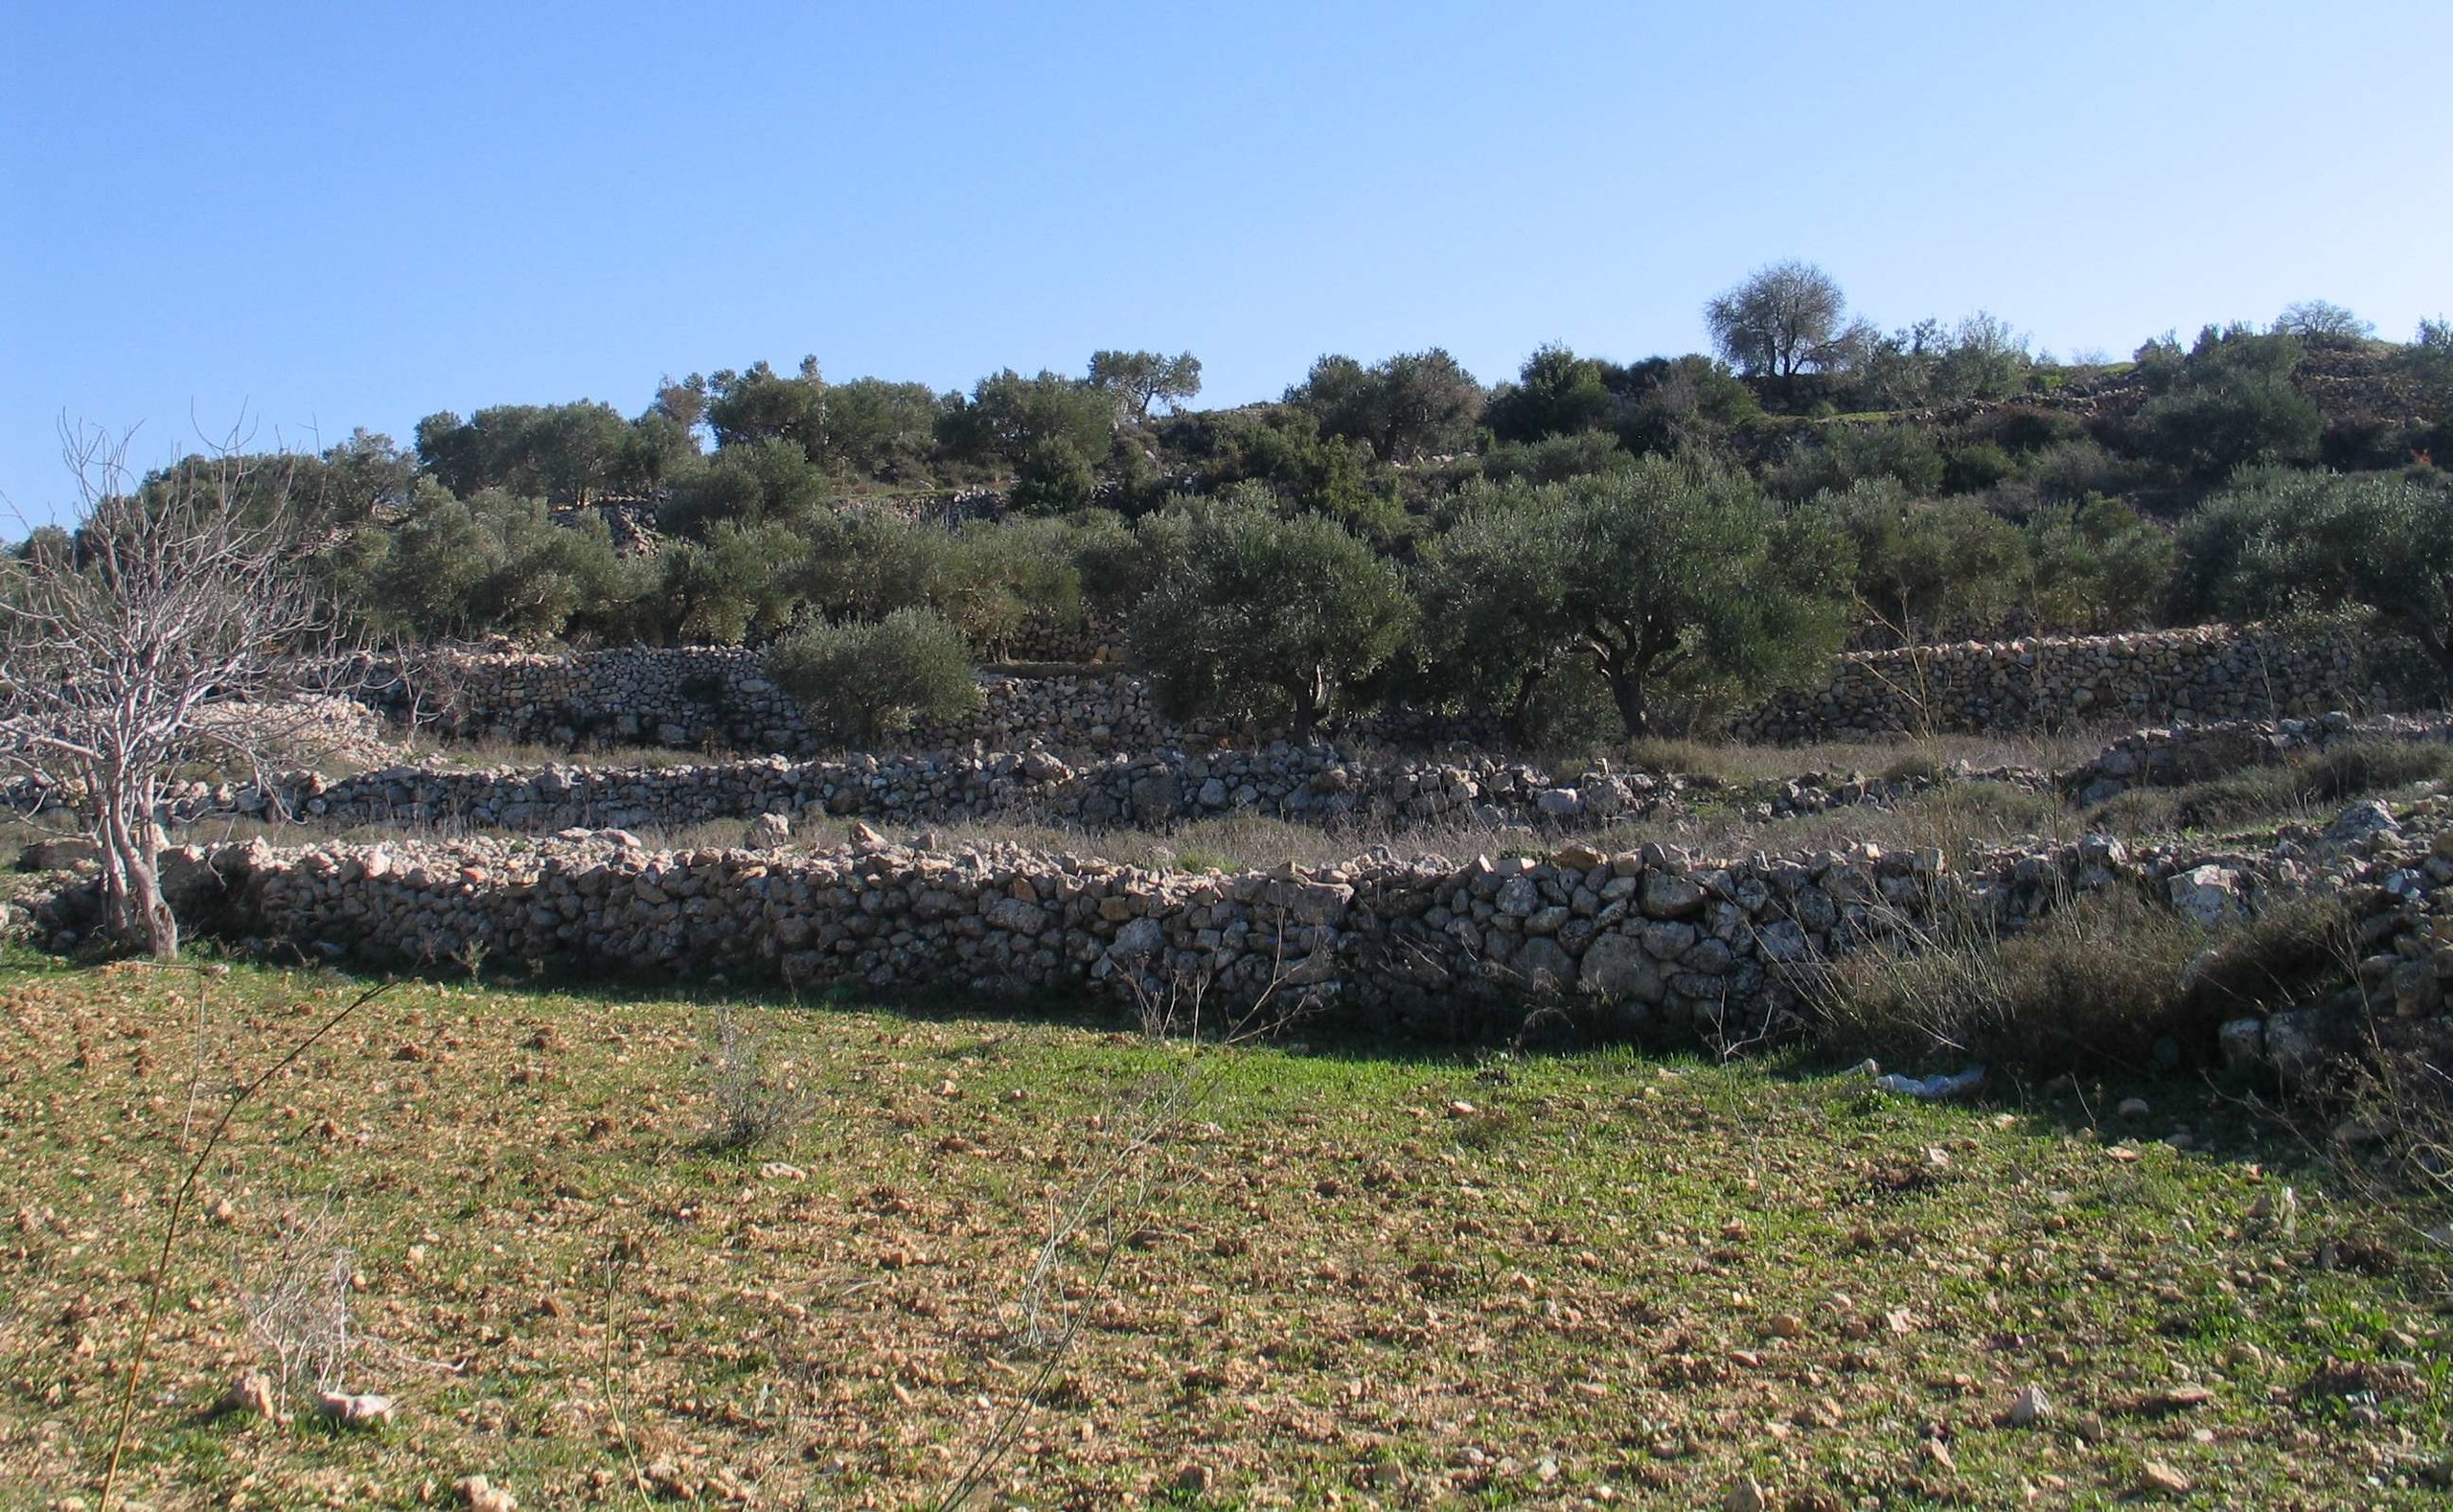 Ancient stone terracing in the Palestinian village of Battir